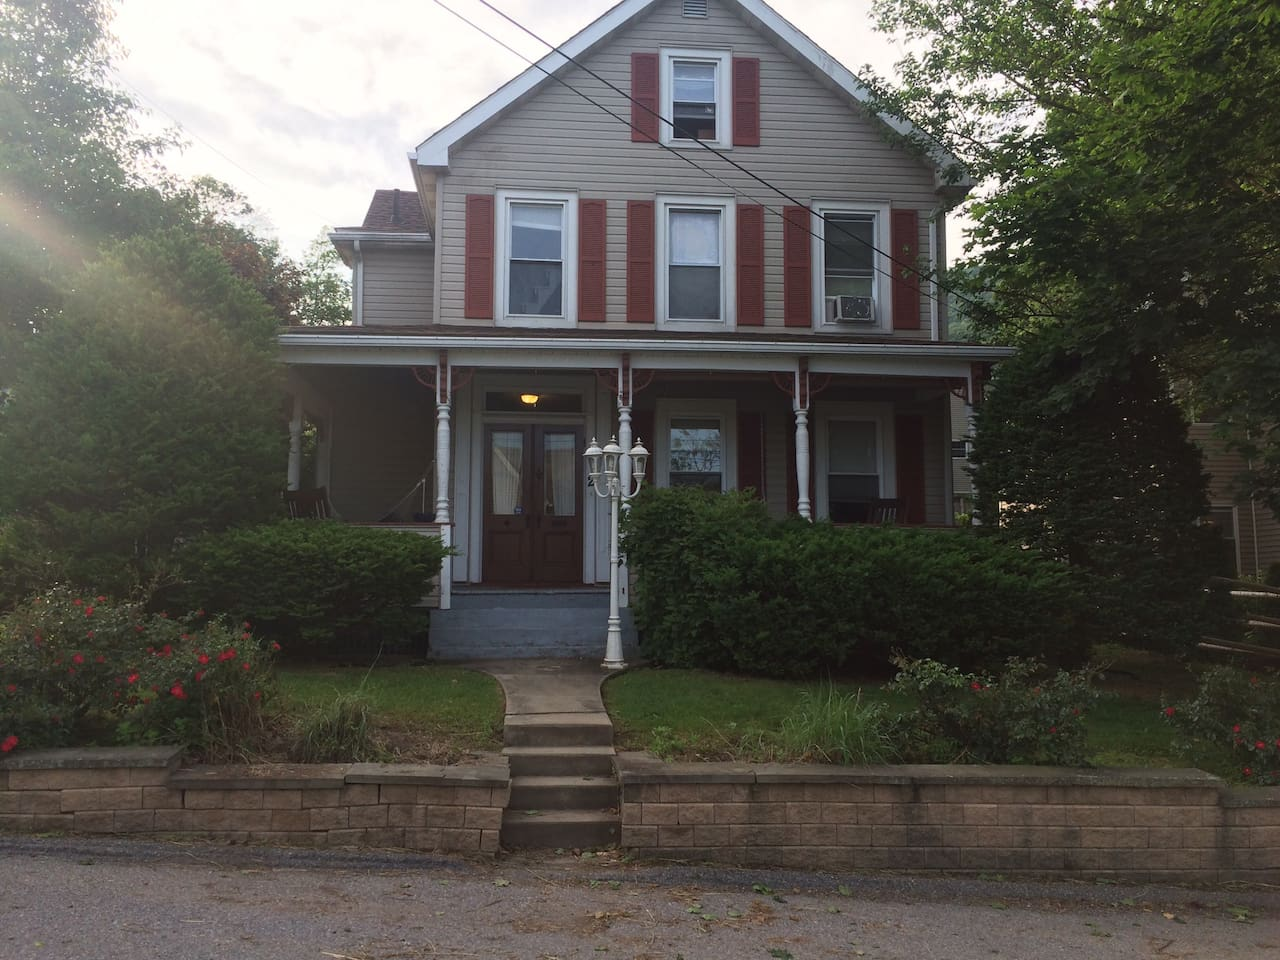 Lovely Victorian home with mature plantings.